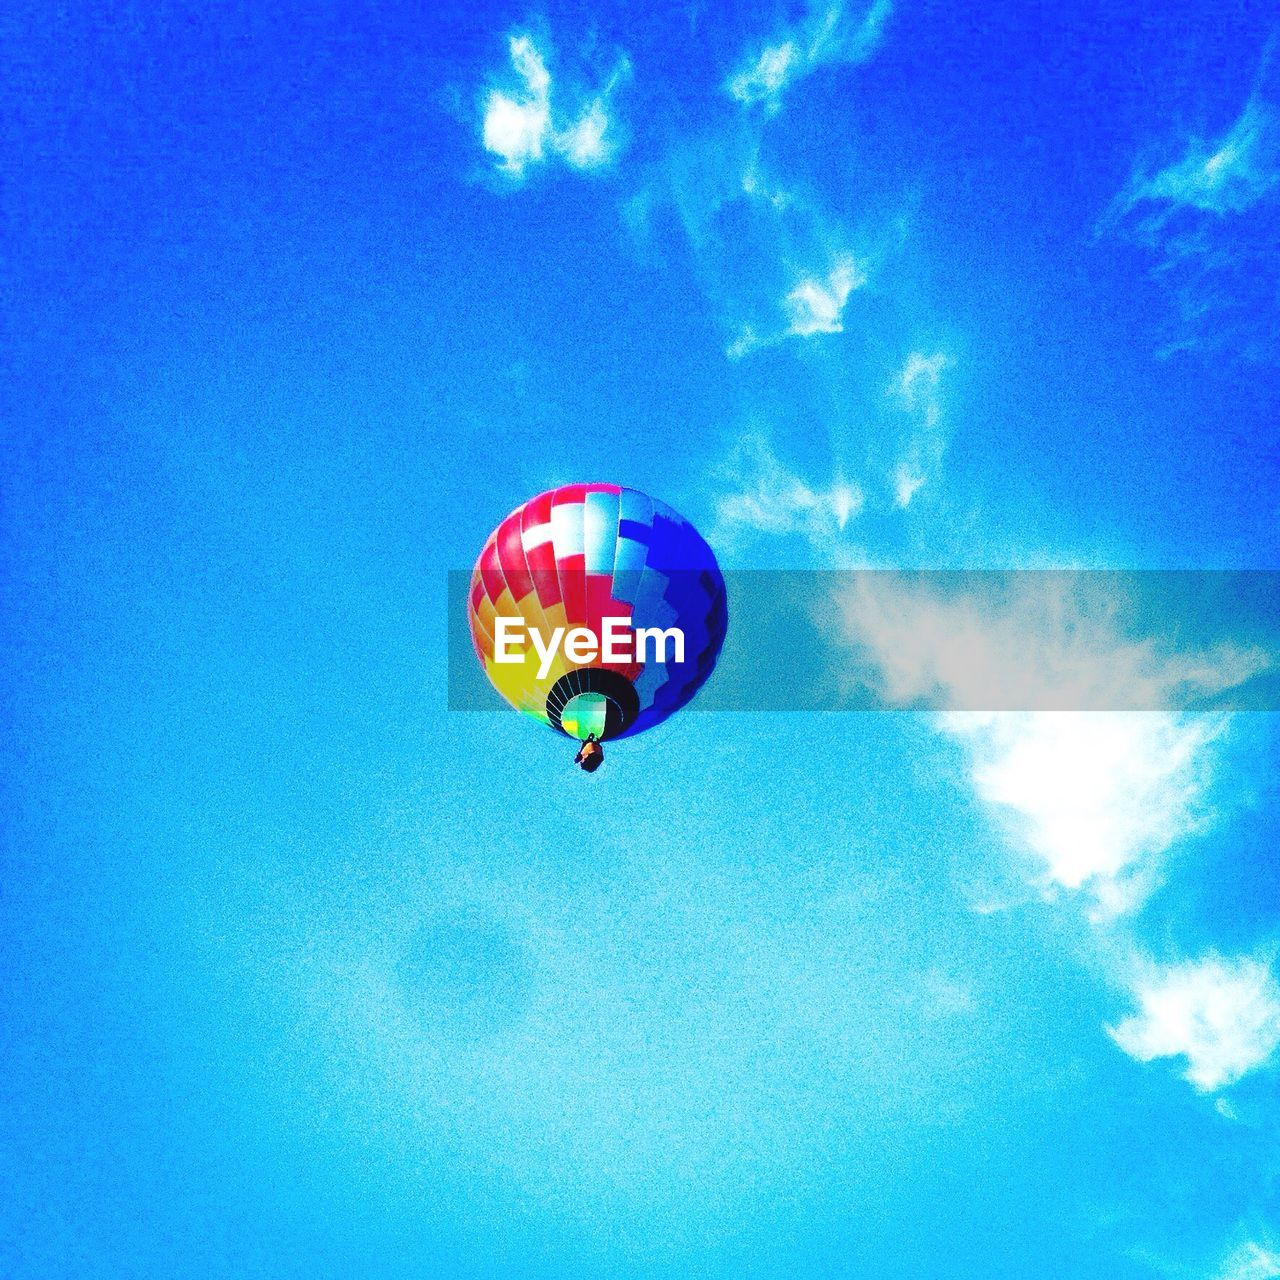 blue, mid-air, low angle view, sky, multi colored, cloud - sky, adventure, flying, day, parachute, outdoors, skydiving, nature, extreme sports, no people, beauty in nature, hot air balloon